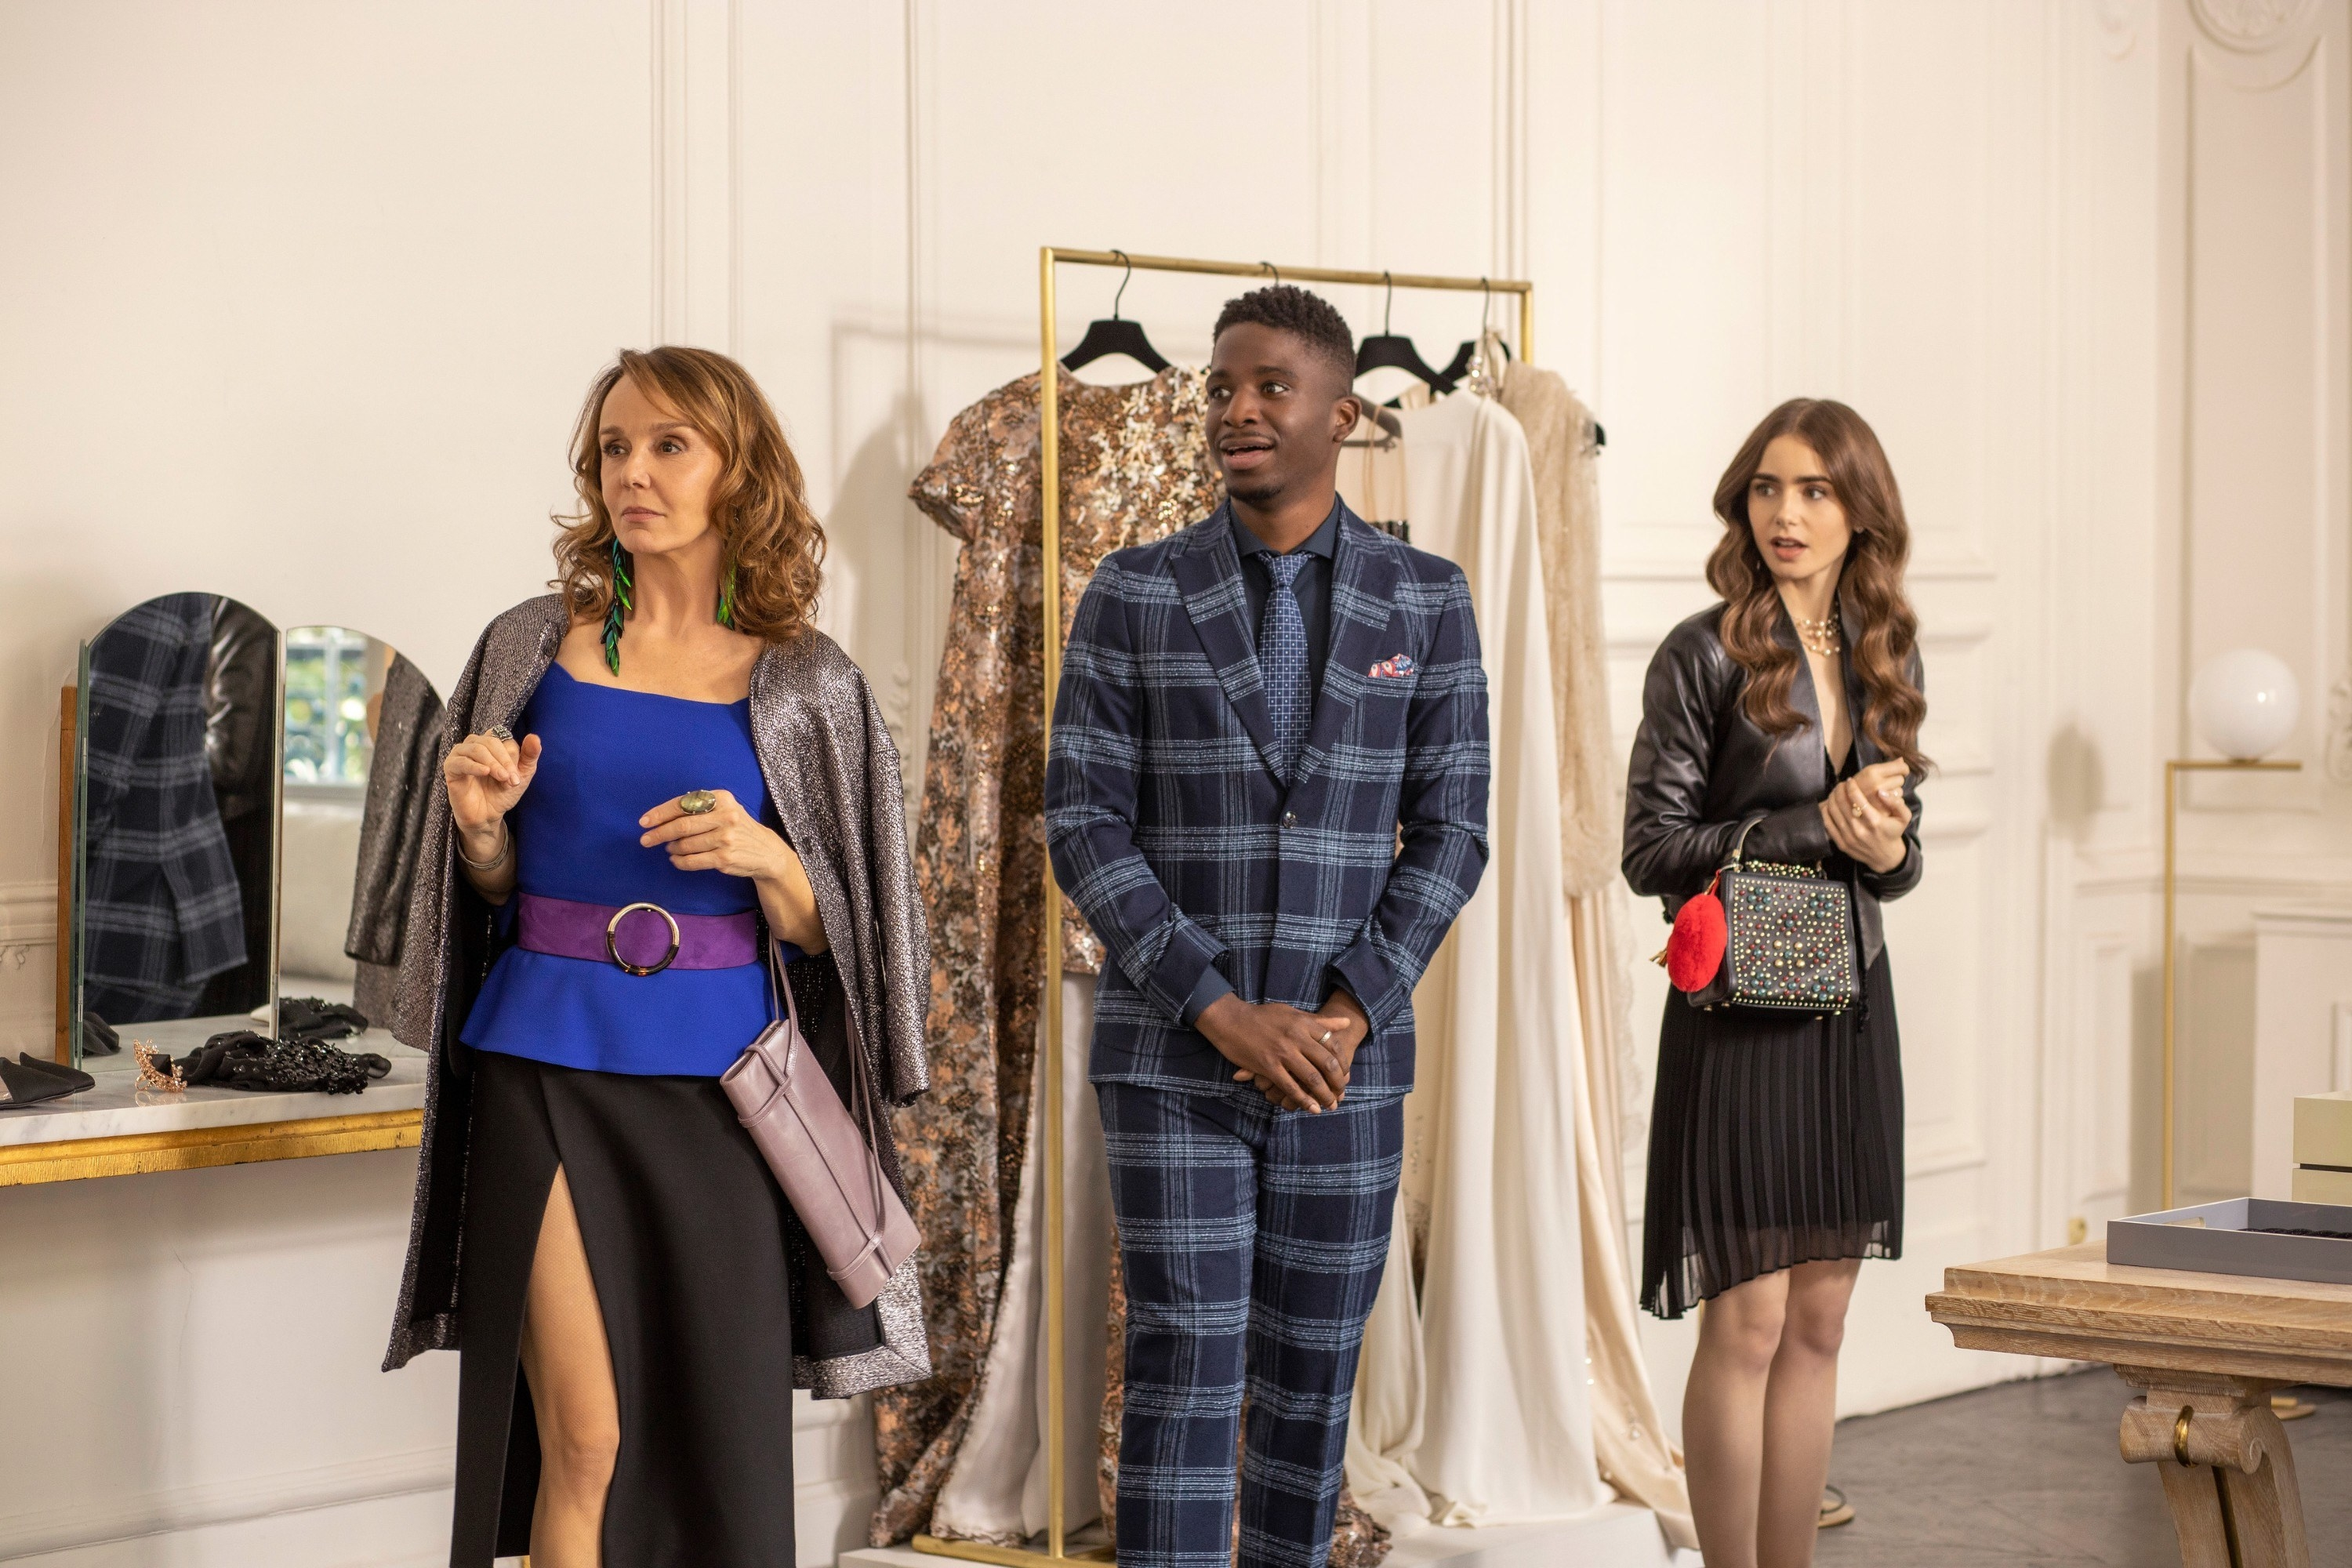 Philippine Leroy-Beaulieu, Samuel Arnold, and Lily Collins stand in a fashion show room